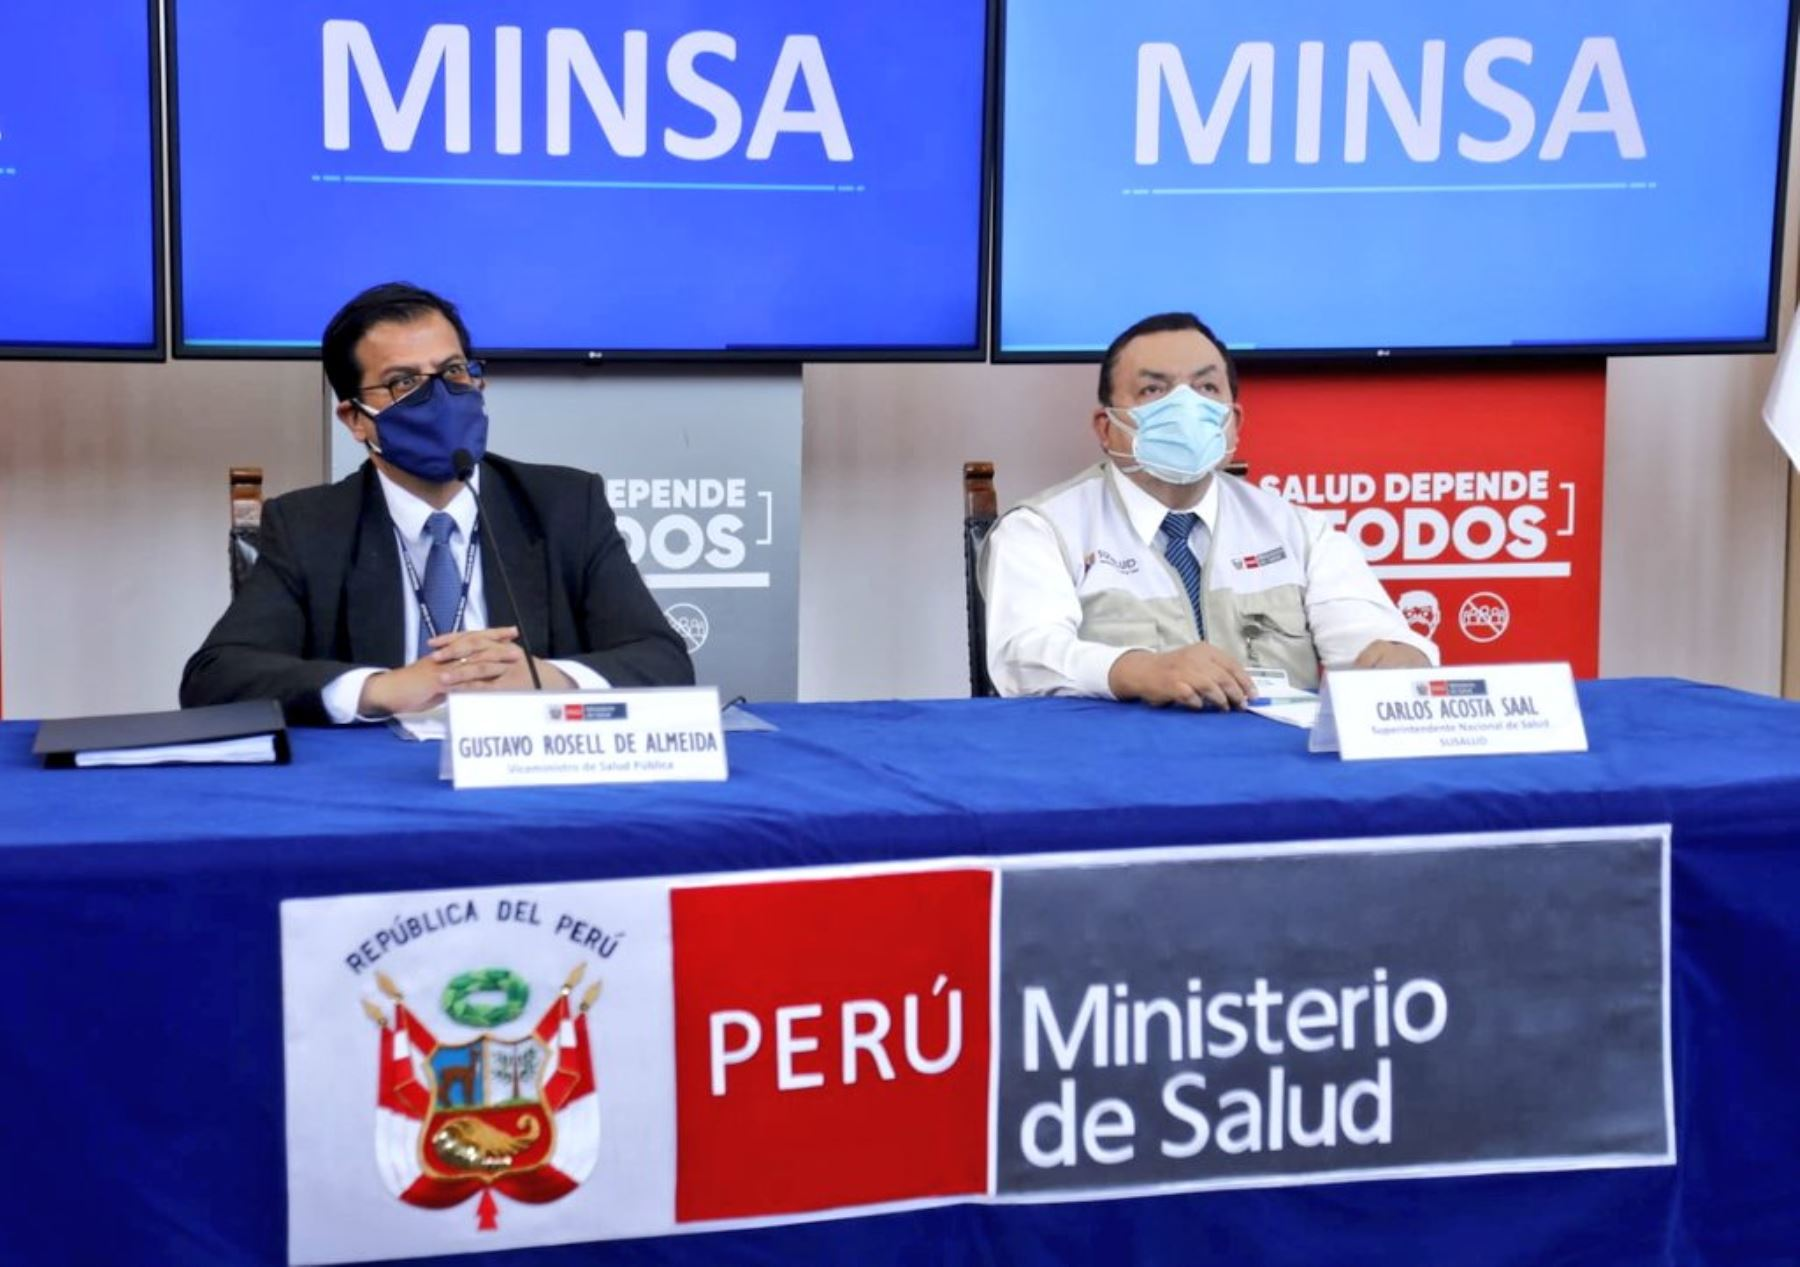 Photo: Twitter/Ministry of Health of Peru